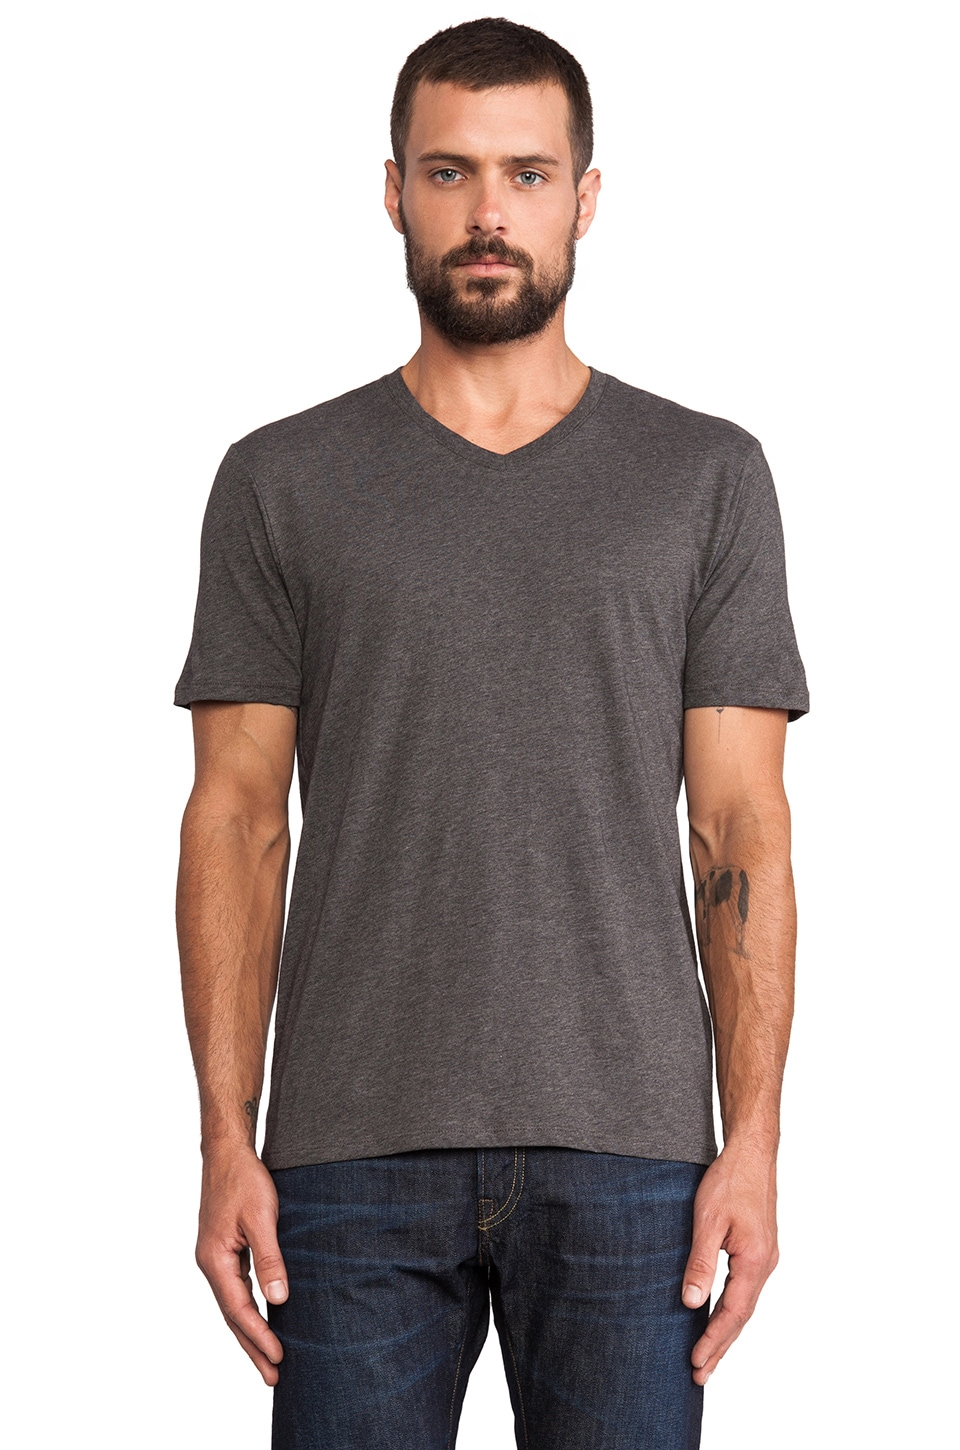 Vince Favorite Jersey V-Neck in Heather Carbon